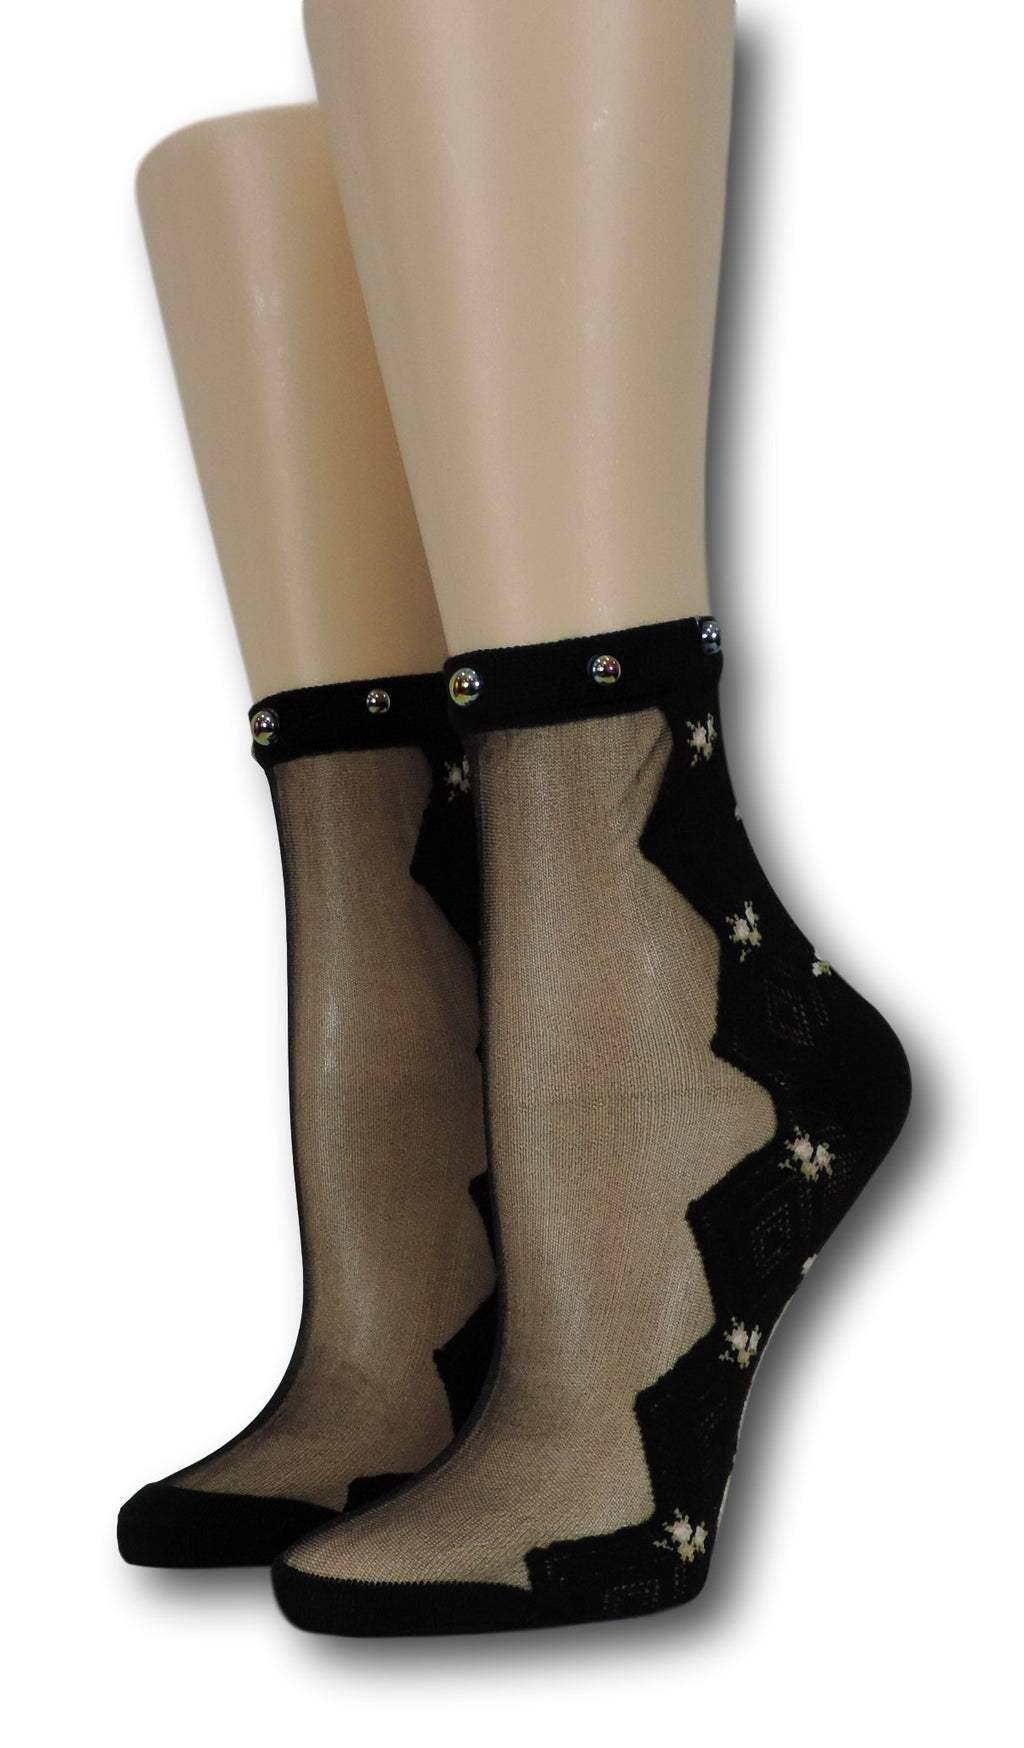 Onyx Zig Zag Sheer Socks with beads